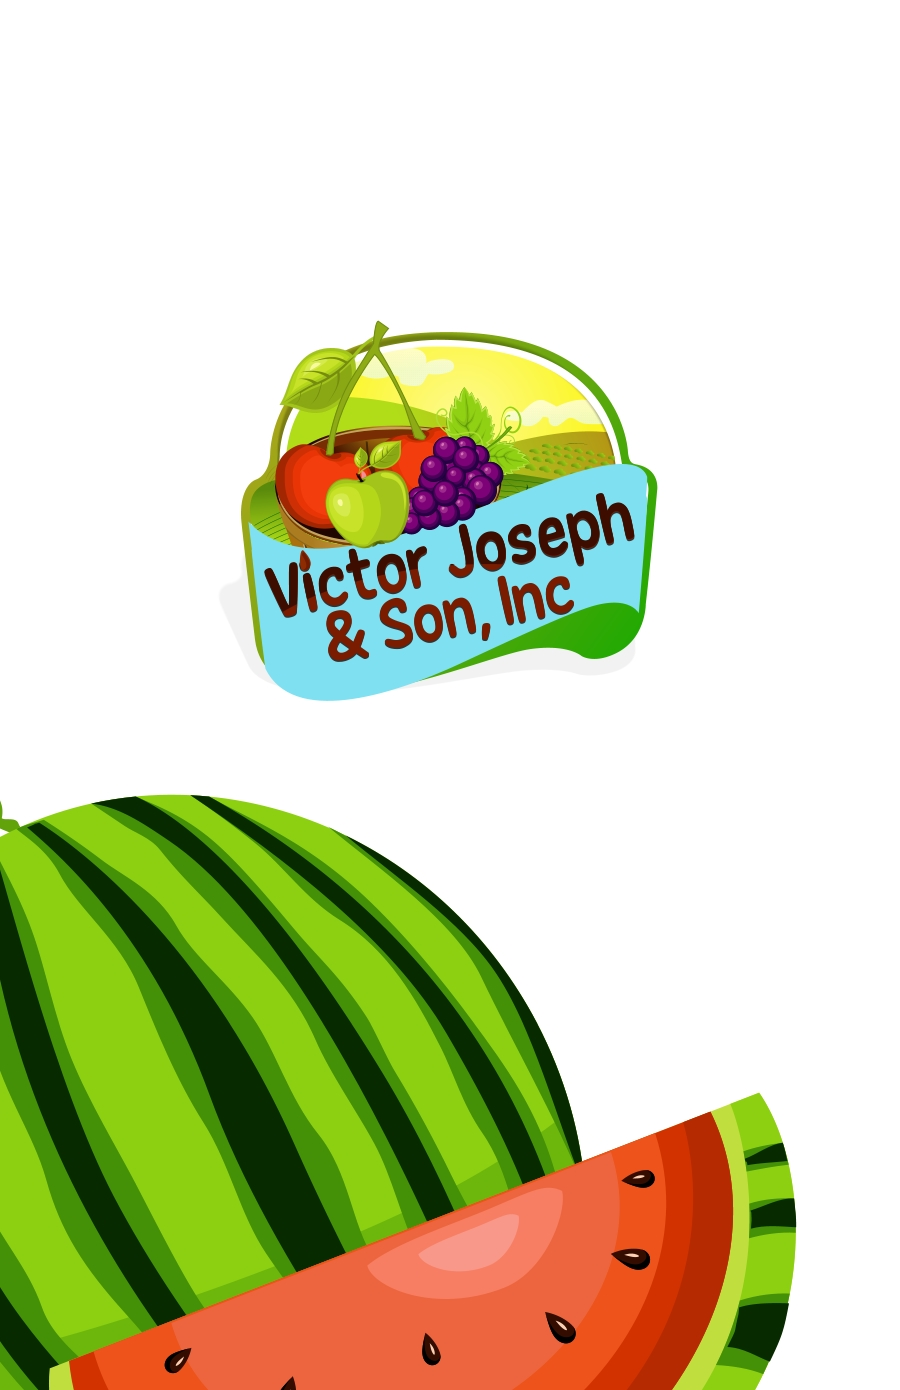 Logo Design by Private User - Entry No. 177 in the Logo Design Contest Imaginative Logo Design for Victor Joseph & Son, Inc..